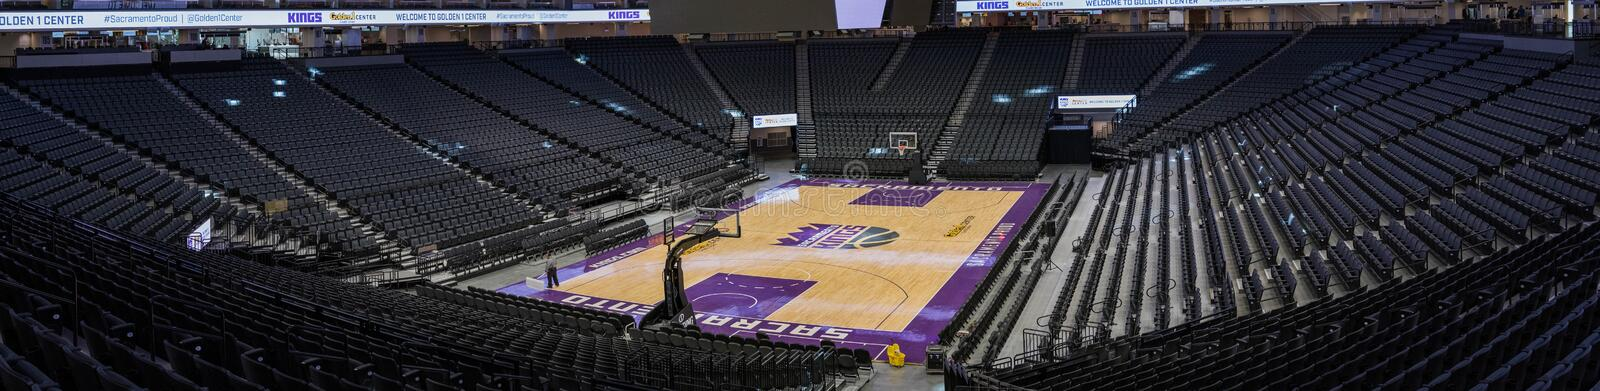 Golden 1 Center Sports Complex 2. Media Day: first look inside the new home of The Sacramento Kings in downtown Sacramento, California panorama stadium seating royalty free stock images